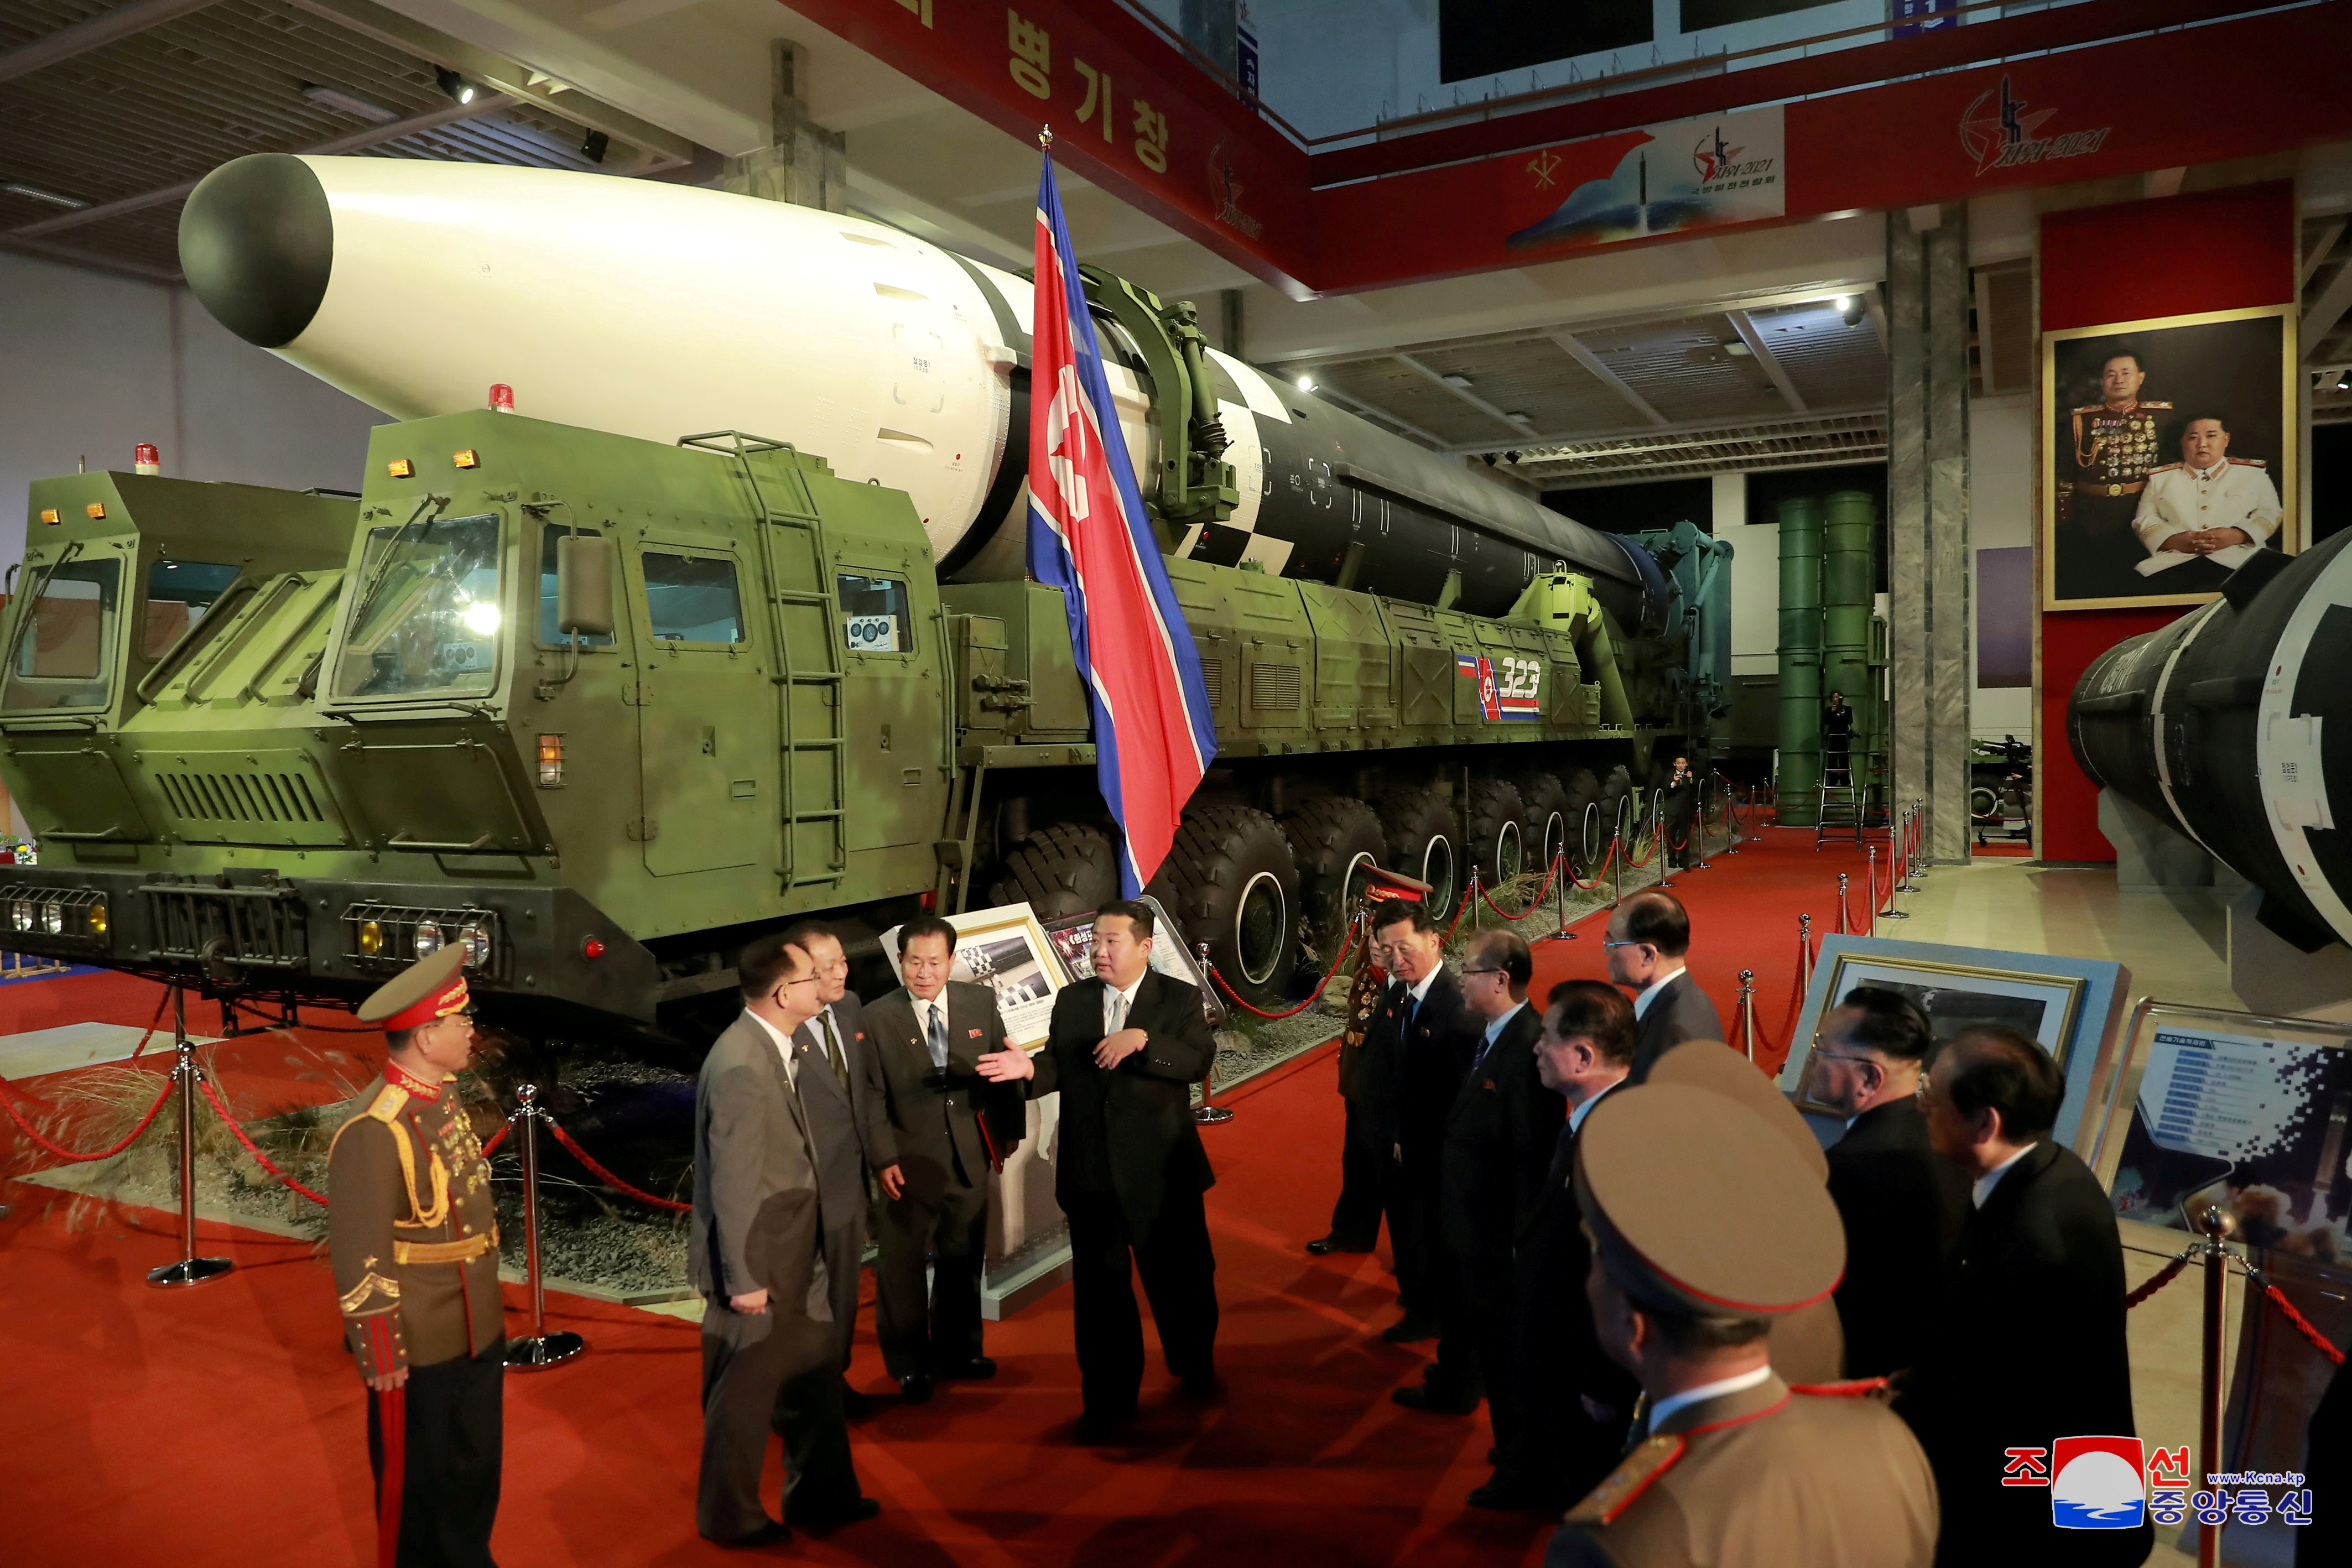 North Korea's leader Kim Jong Un speaks to officials next to military weapons and vehicles on display, including the country's intercontinental ballistic missiles (ICBMs), at the Defence Development Exhibition, in Pyongyang, North Korea, October 12.  KCNA via REUTERS